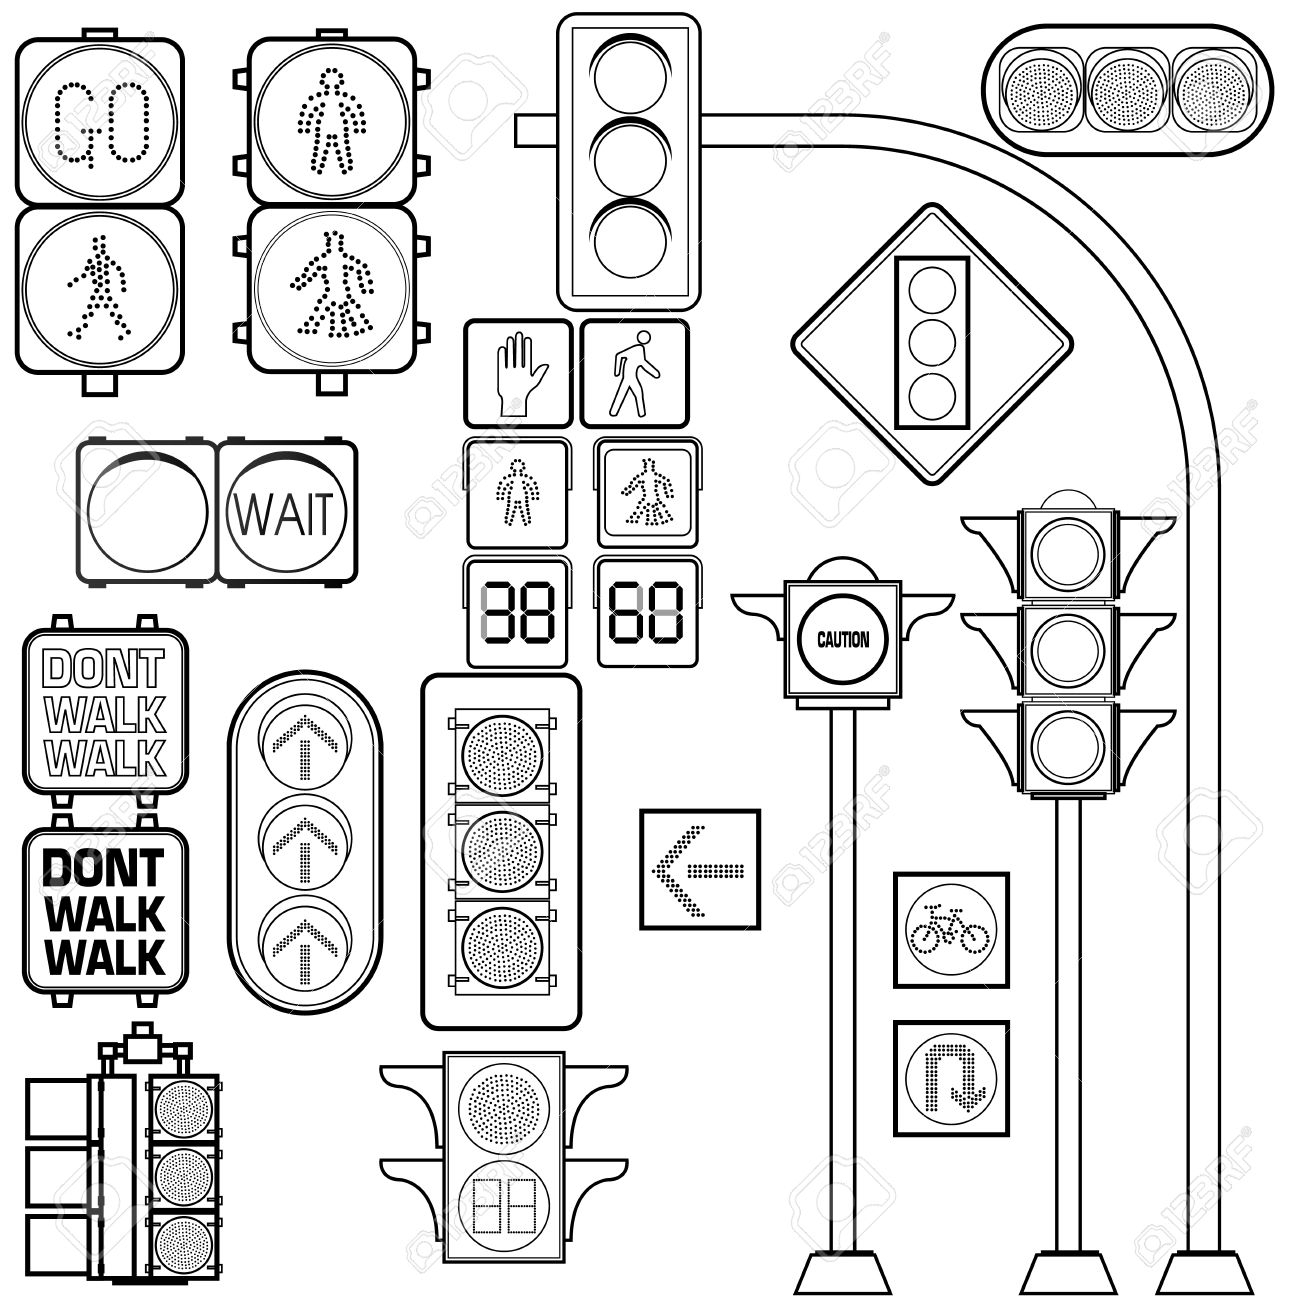 Enchanting traffic light wiring diagram mold everything you need